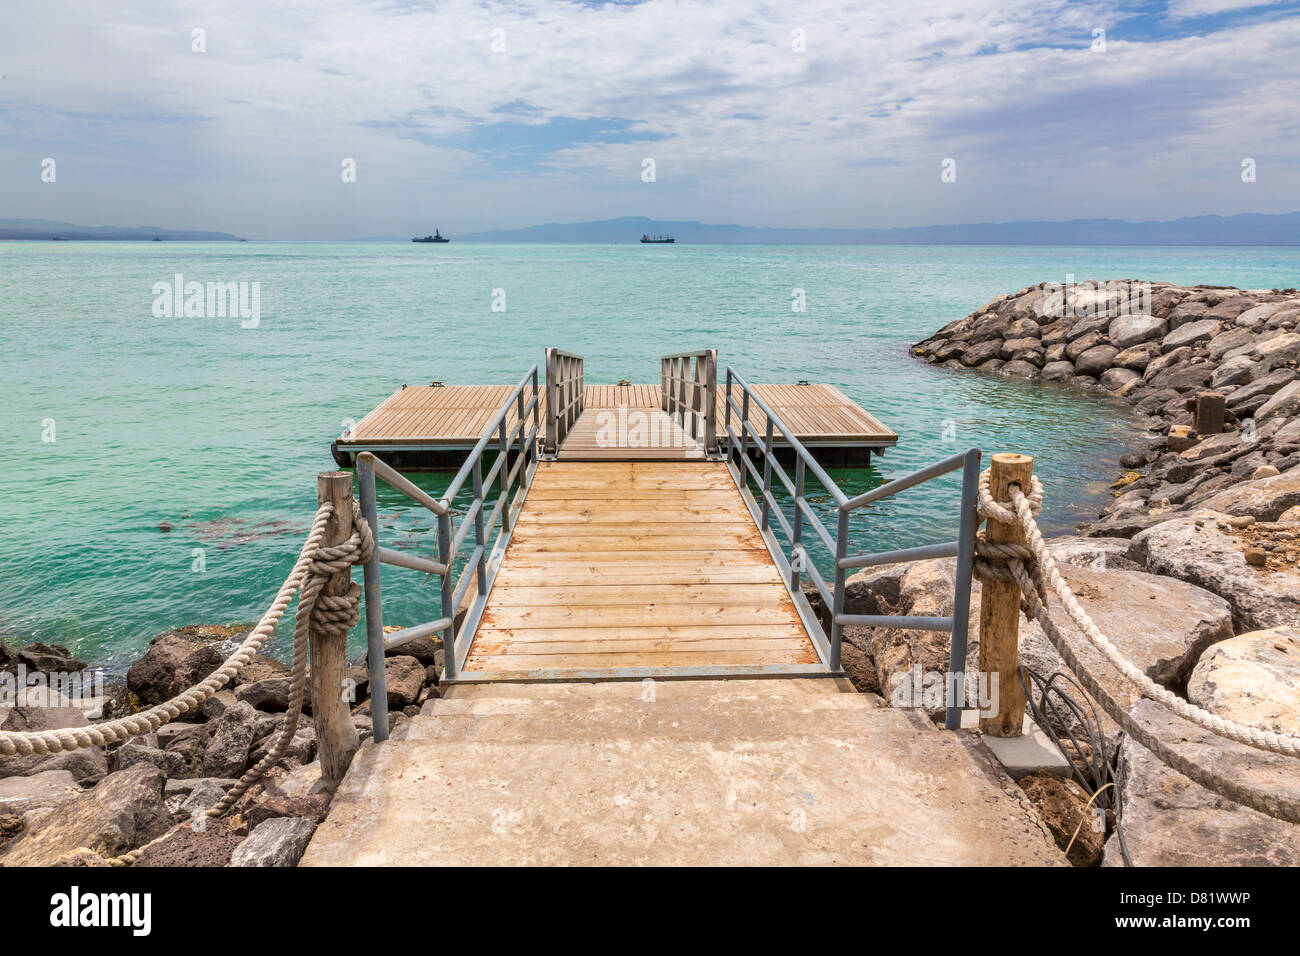 A wooden deck with metal railing on the shores of the Red sea Stock Photo